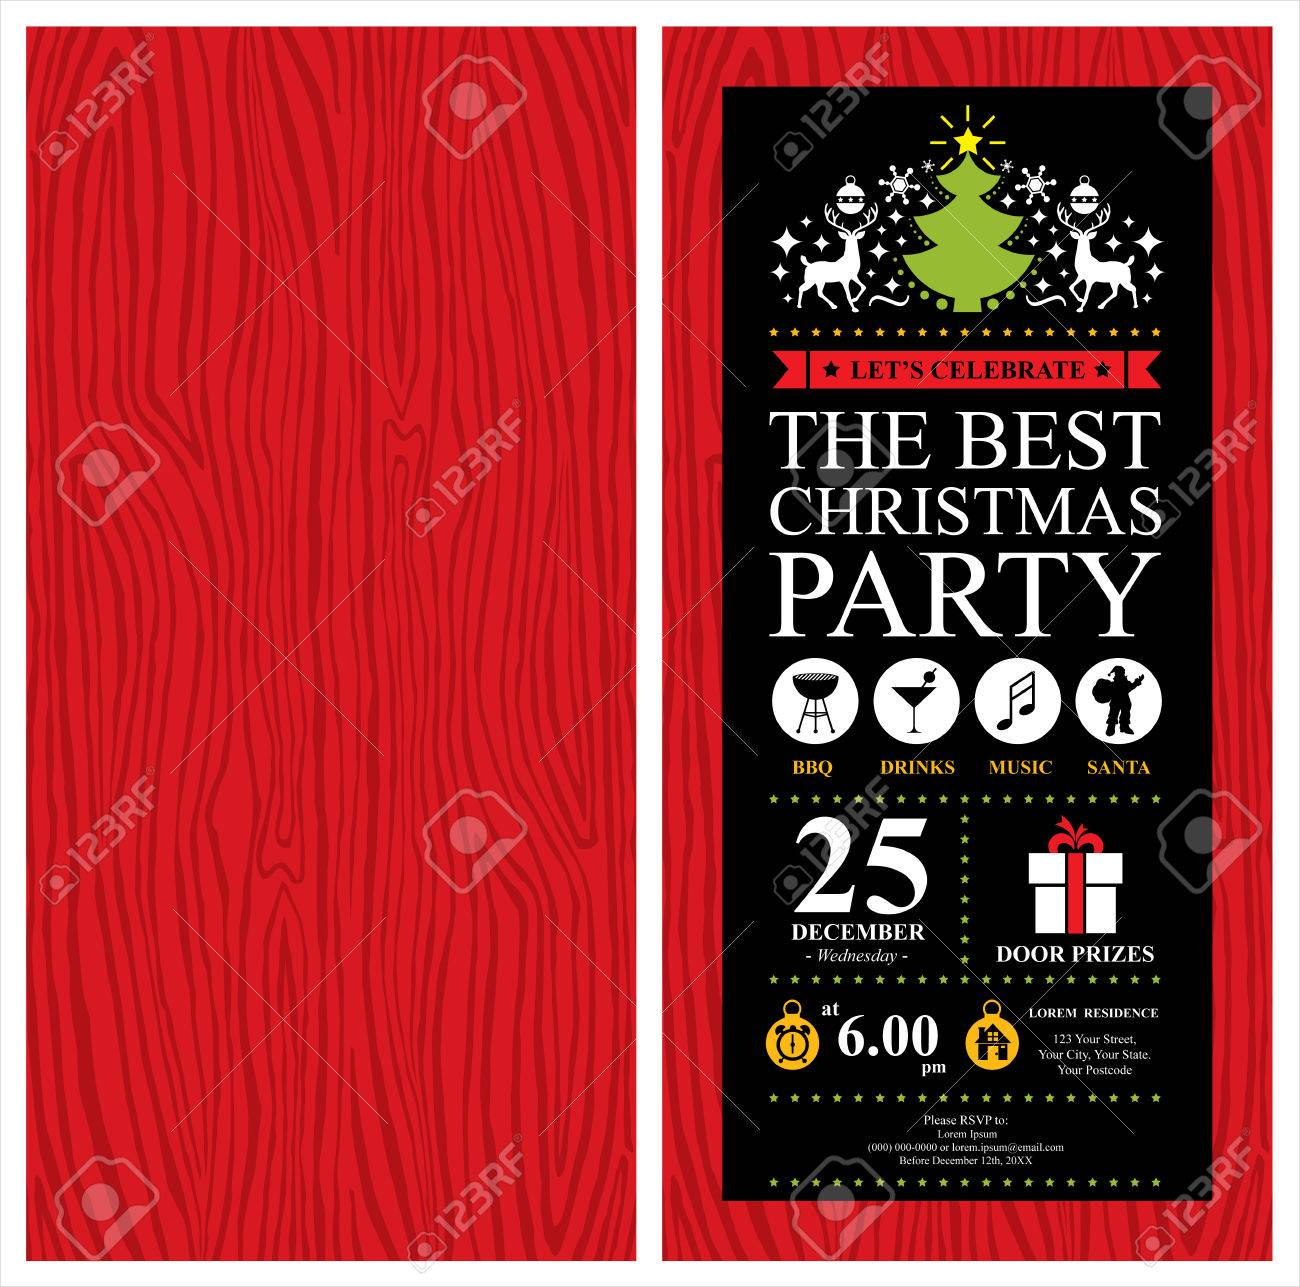 Christmas Party Invitation Card Royalty Free Cliparts Vectors And